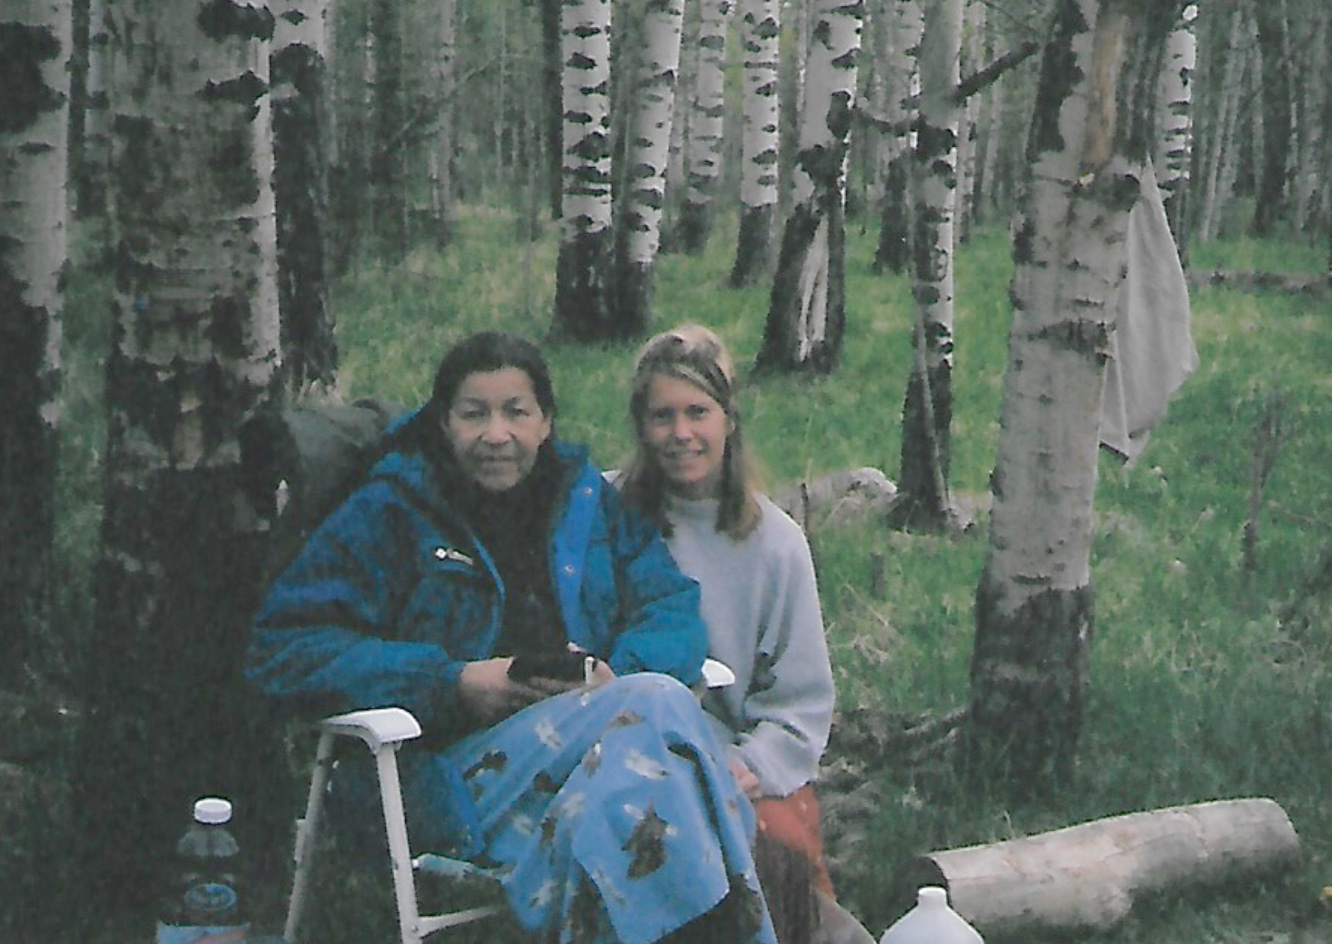 Cree Elder, Doreen Spene (CIWRI) and Lisa Marie, after my four-day VISION QUEST, Bragg Creek, AB.